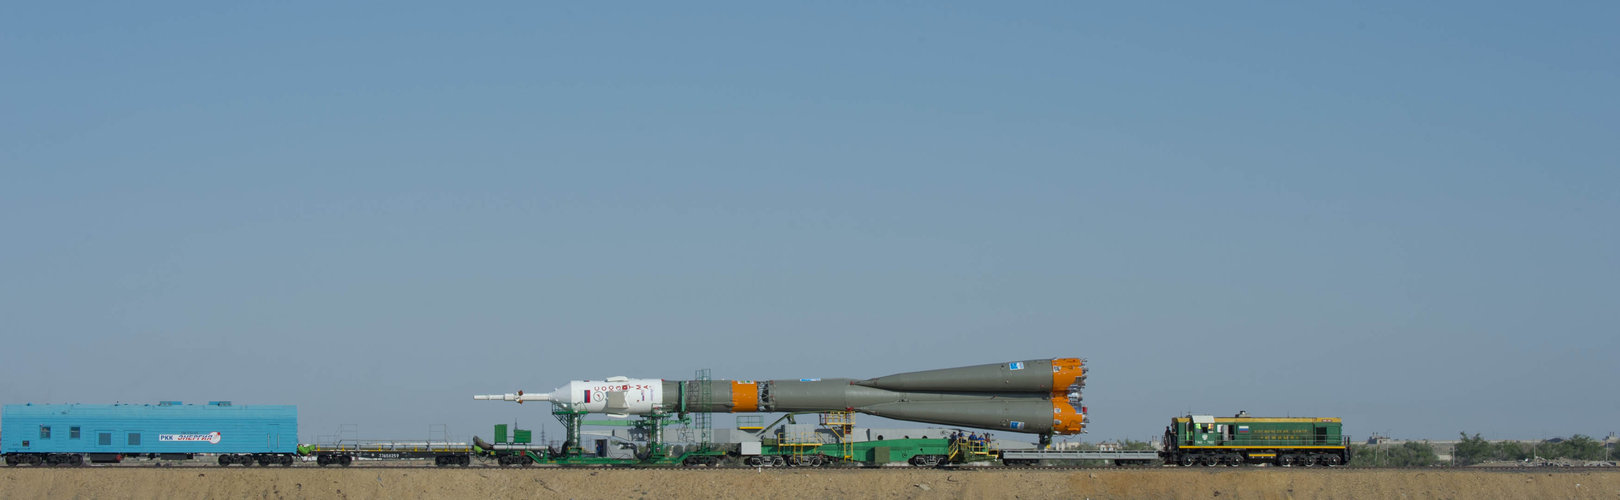 Soyuz moving to launchpad